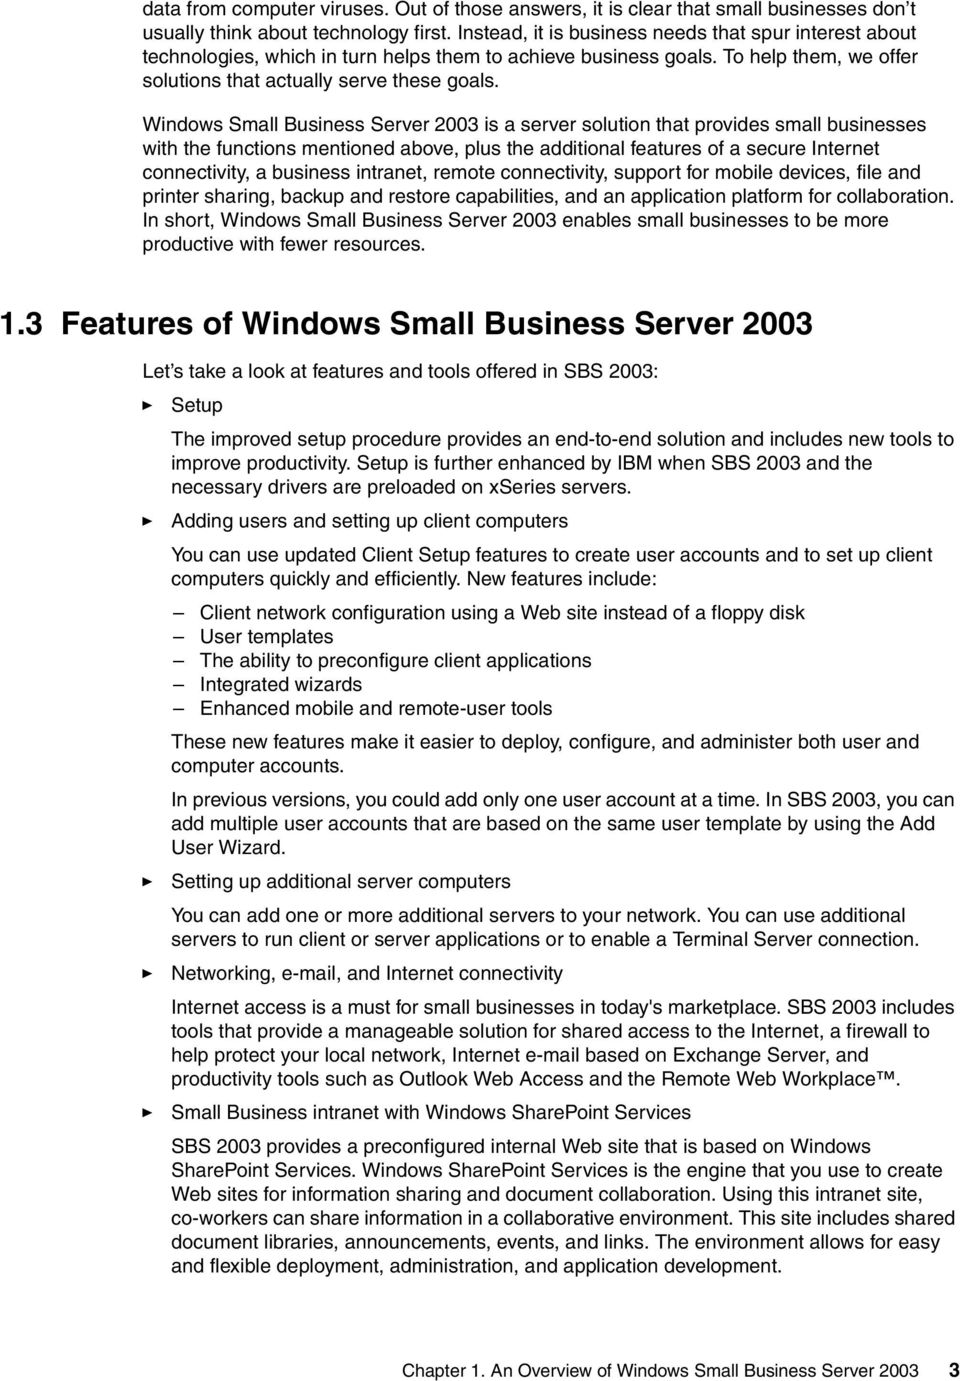 Windows Small Business Server 2003 is a server solution that provides small businesses with the functions mentioned above, plus the additional features of a secure Internet connectivity, a business